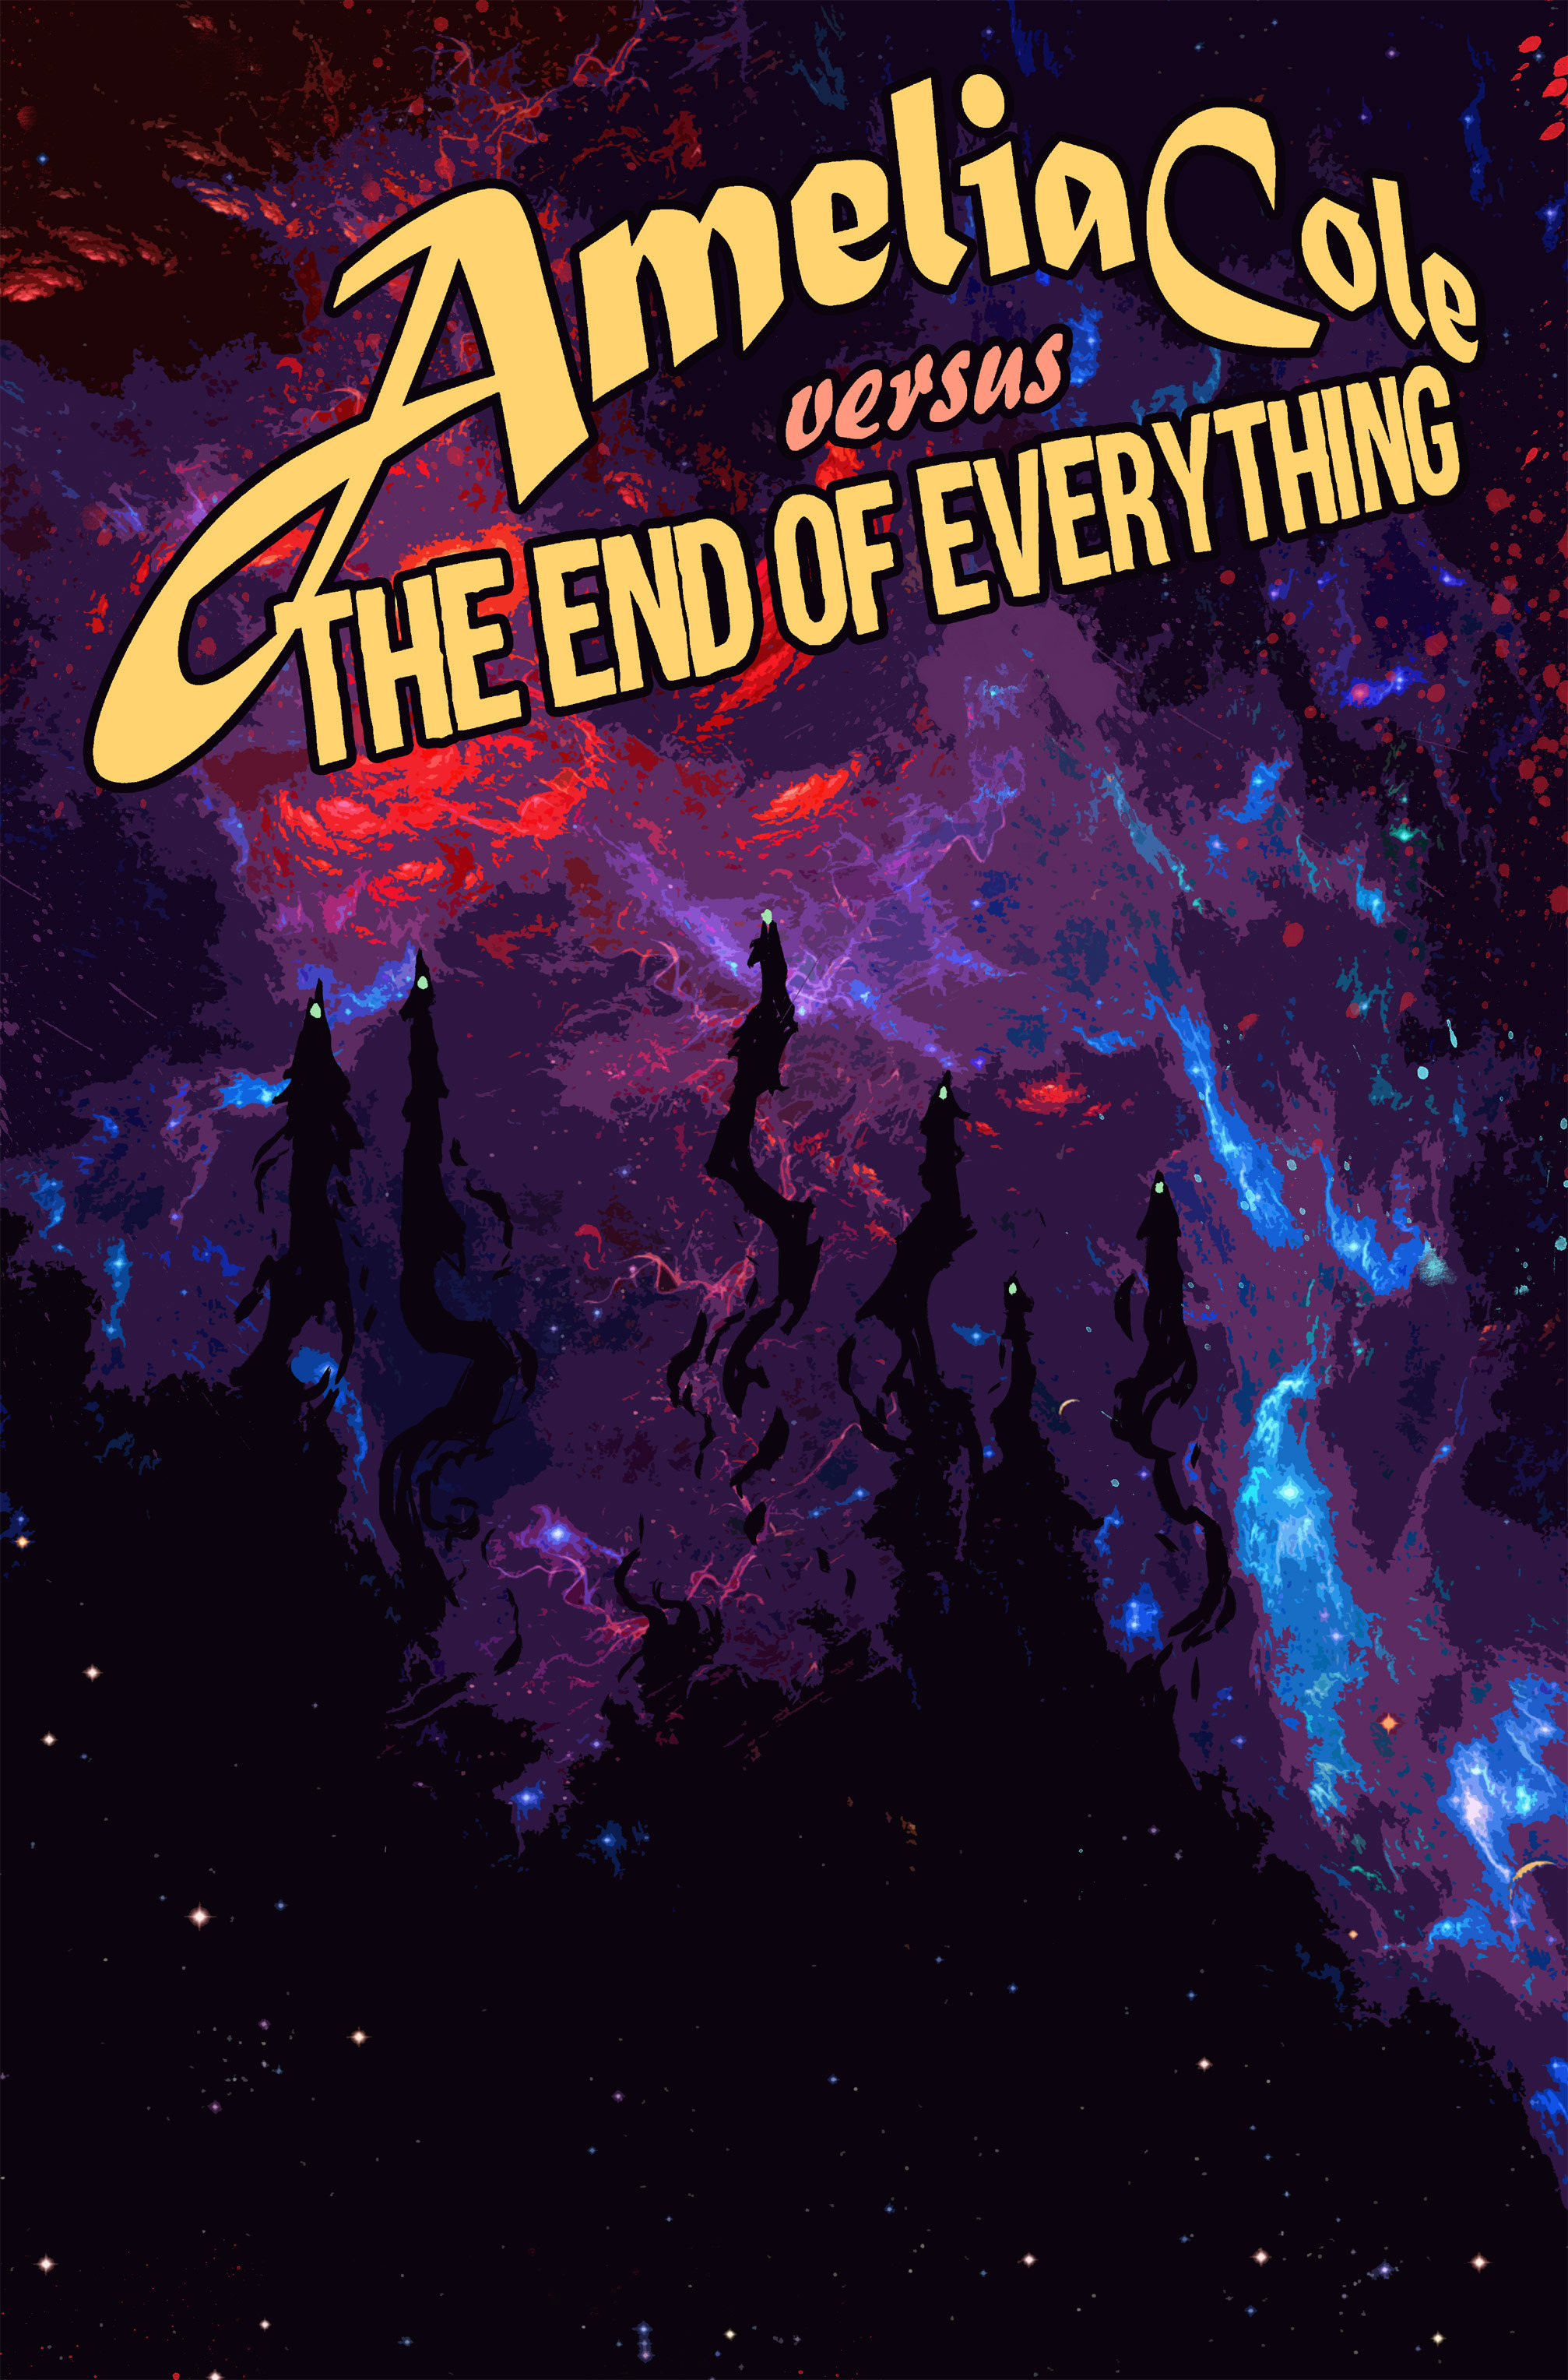 Amelia Cole Versus The End of Everything 28 Page 1